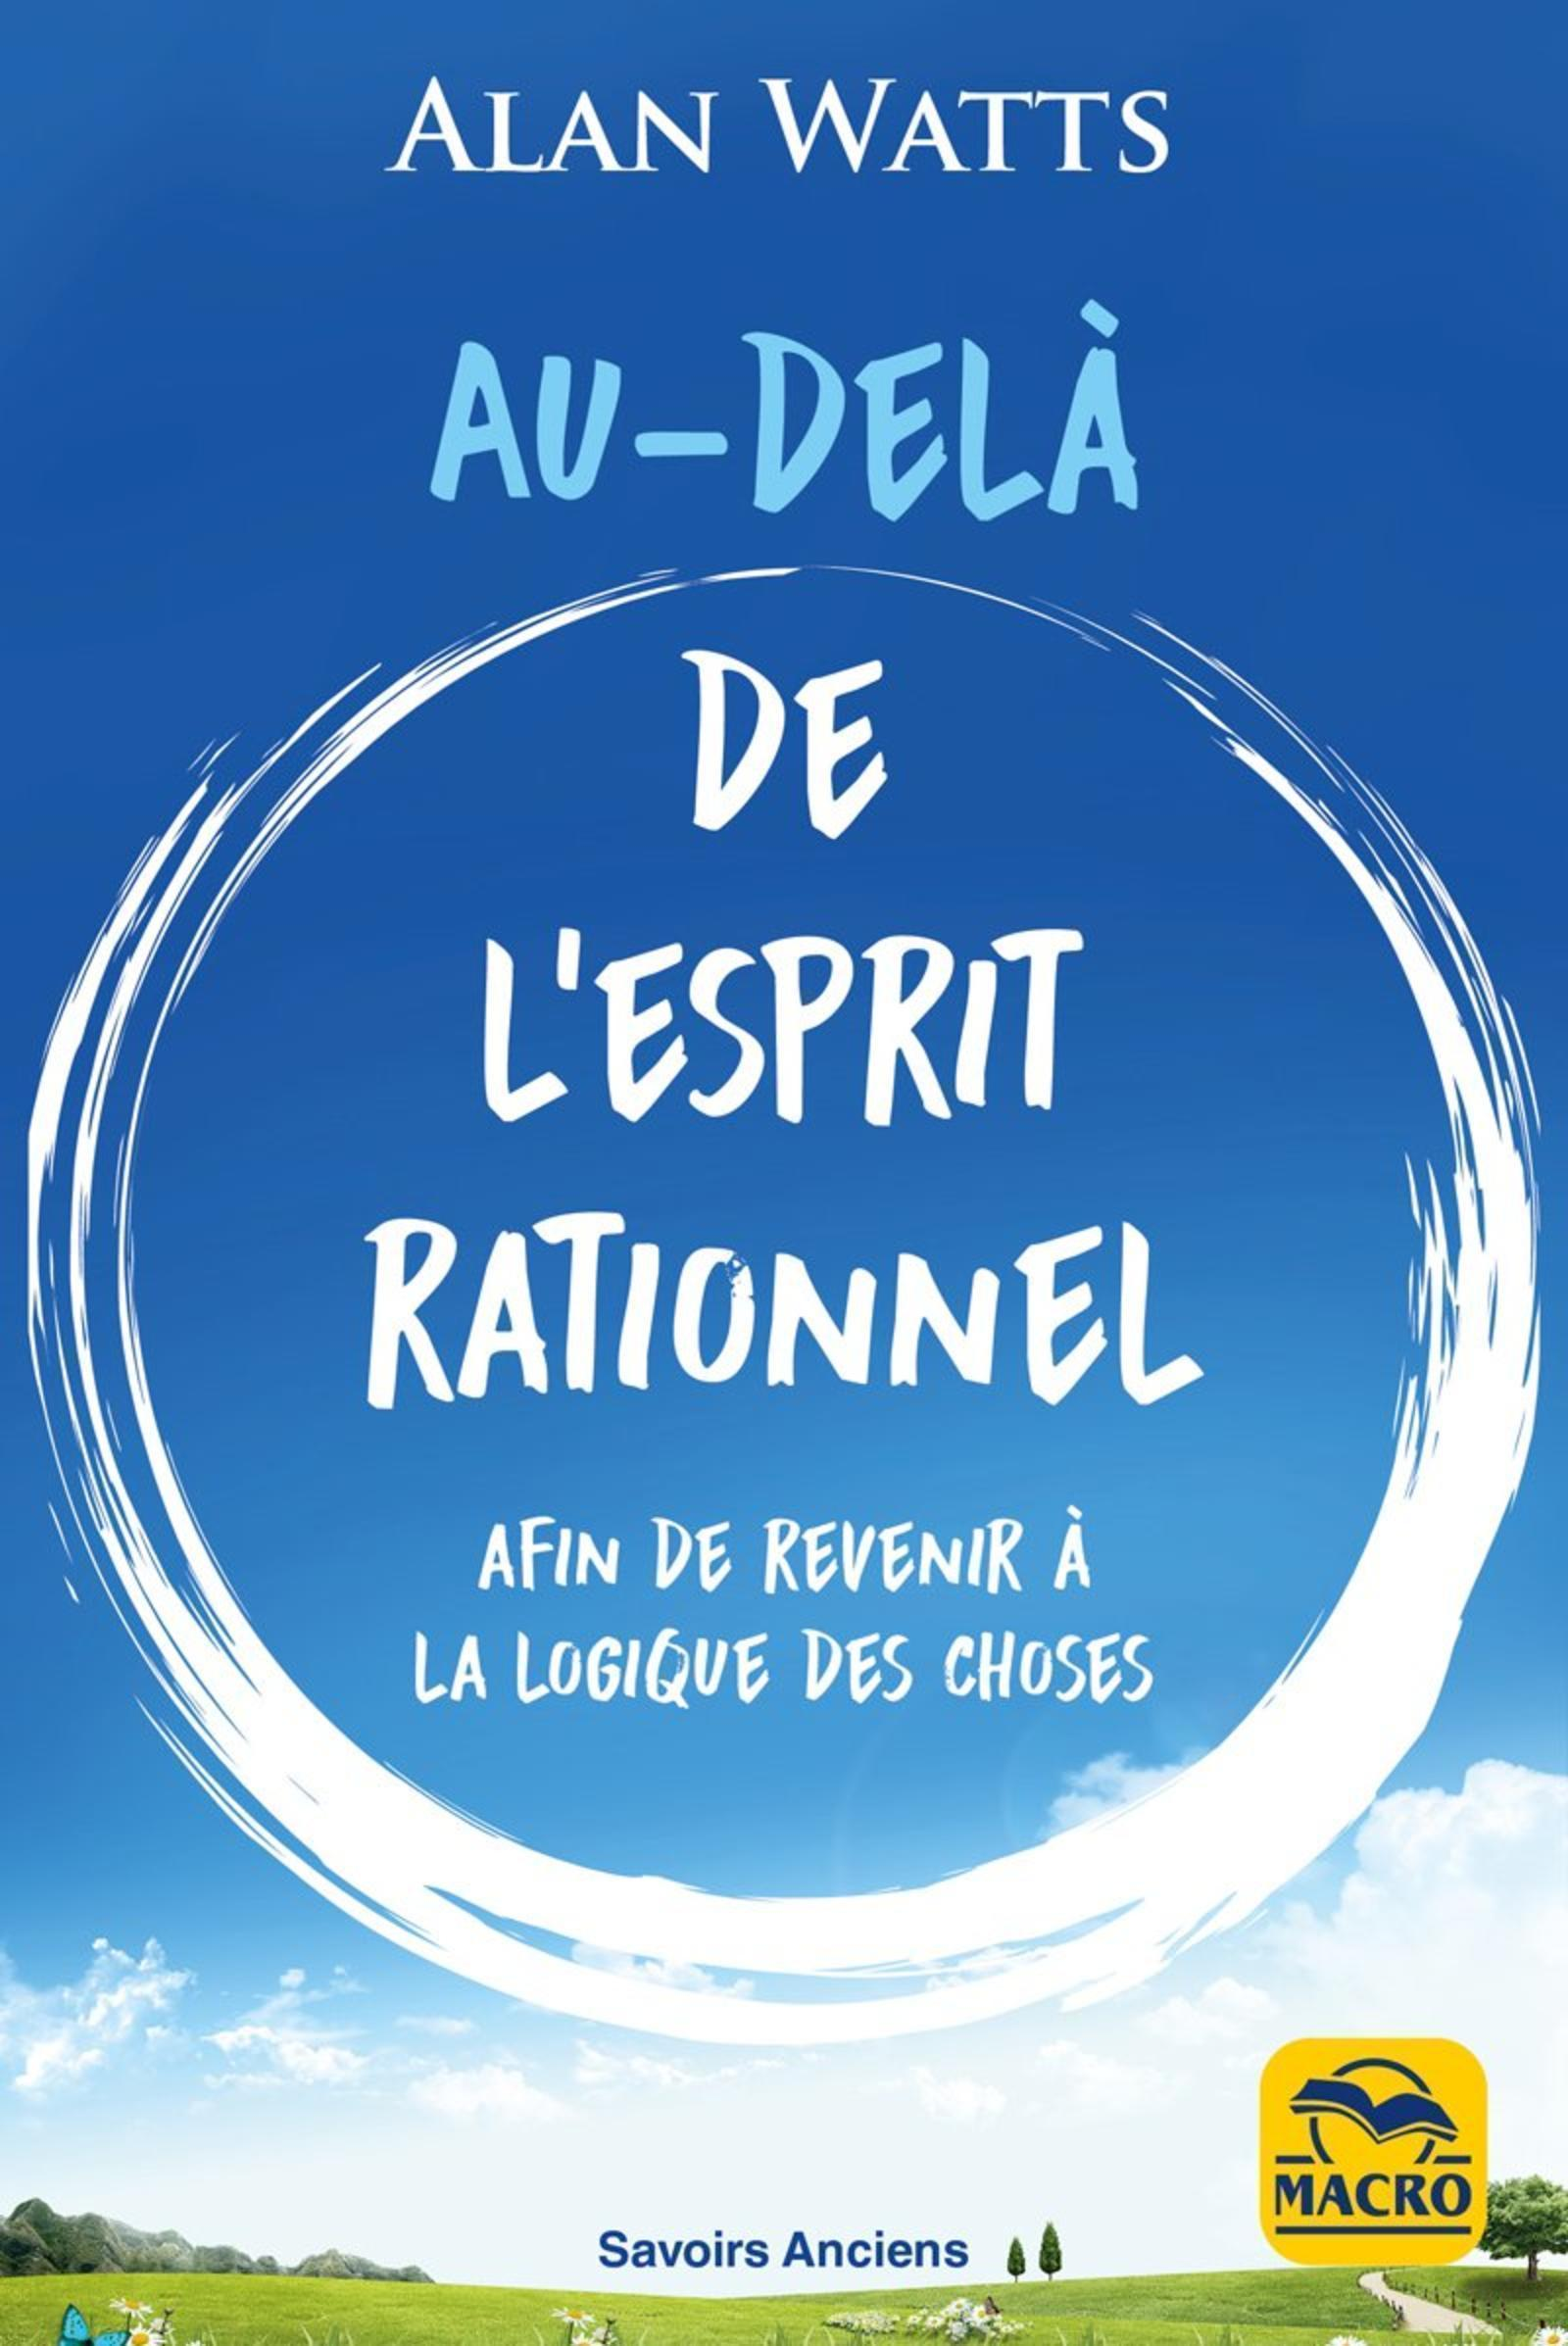 AU-DELA DE L ESPRIT RATIONNEL